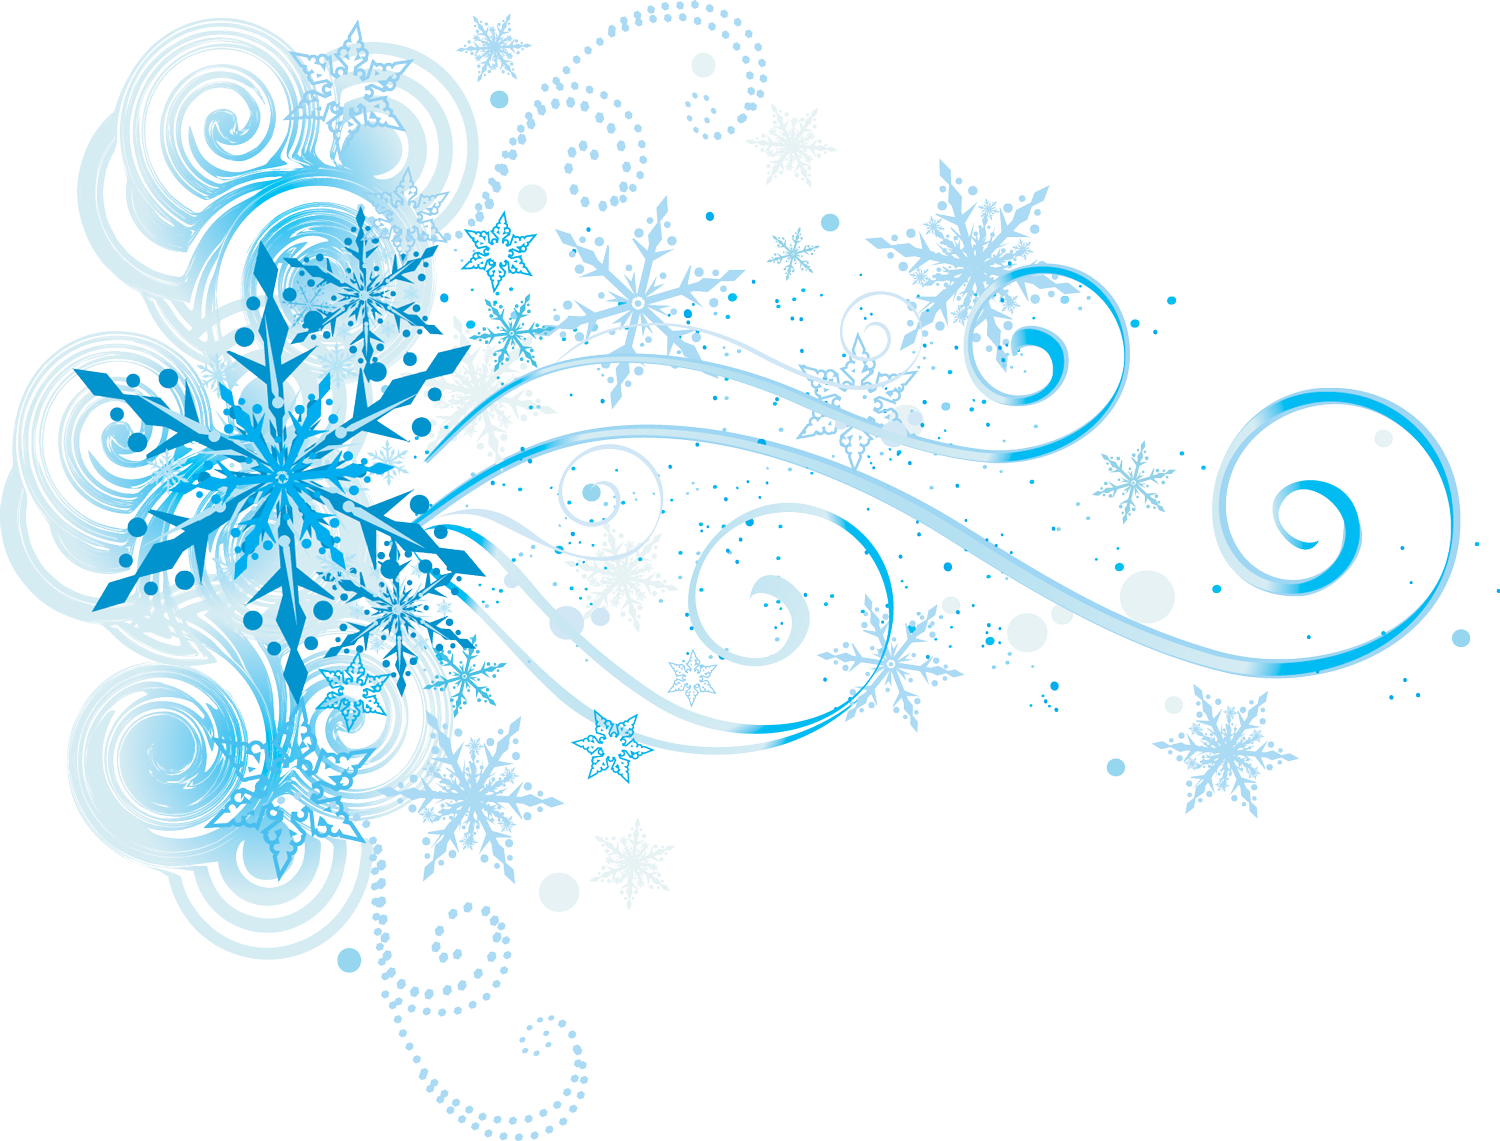 Snowflake wind clipart jpg library library wrap around the shoulder with ribbons flowing down the arm ... jpg library library